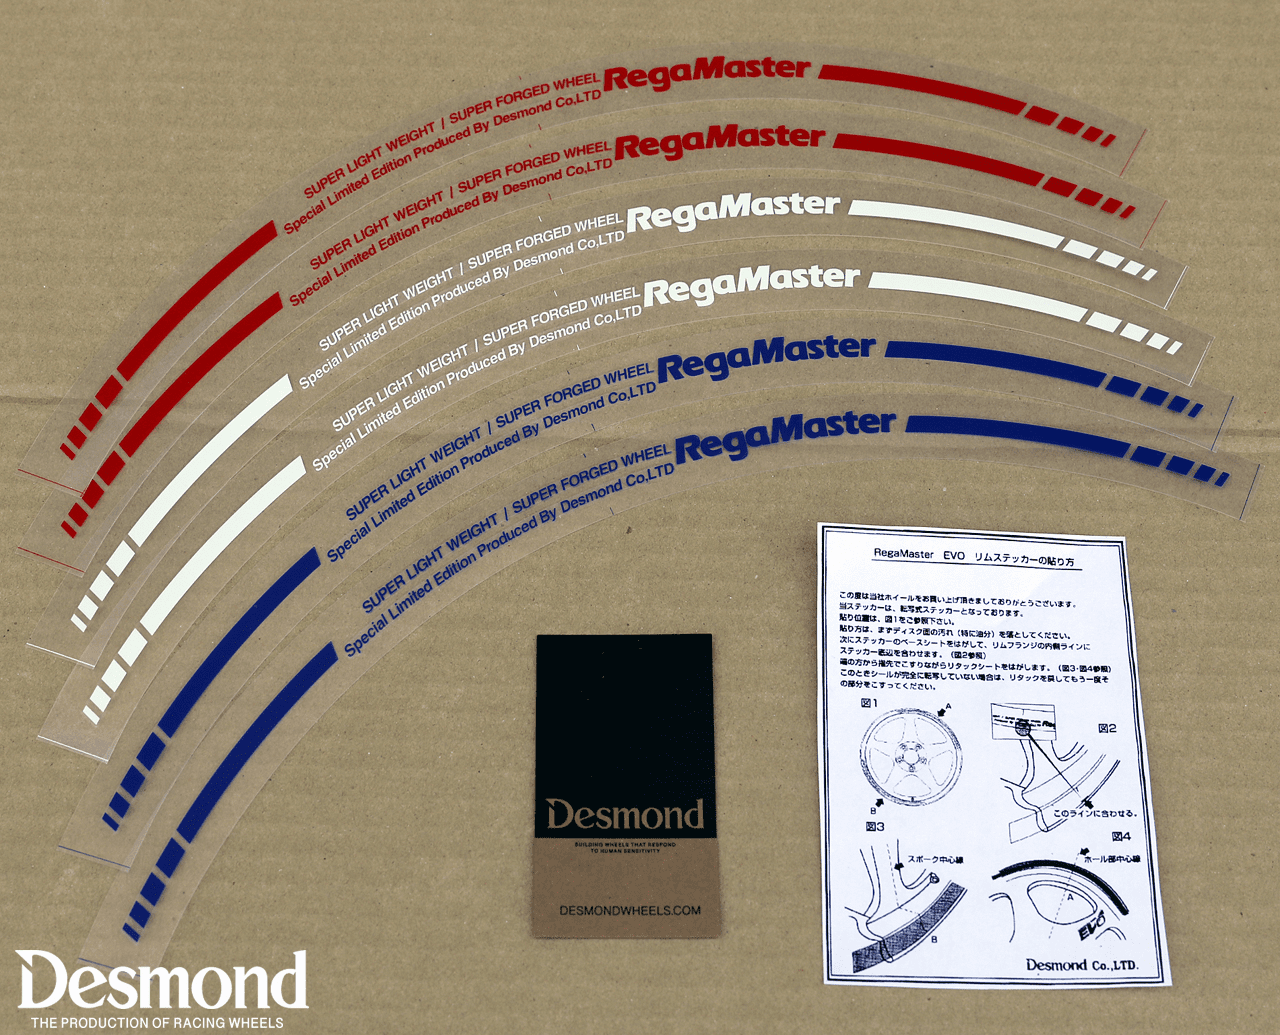 """Desmond Regamaster EVO and II Lip Decal 16"""" Single (1 Decal) Red, White or Blue"""